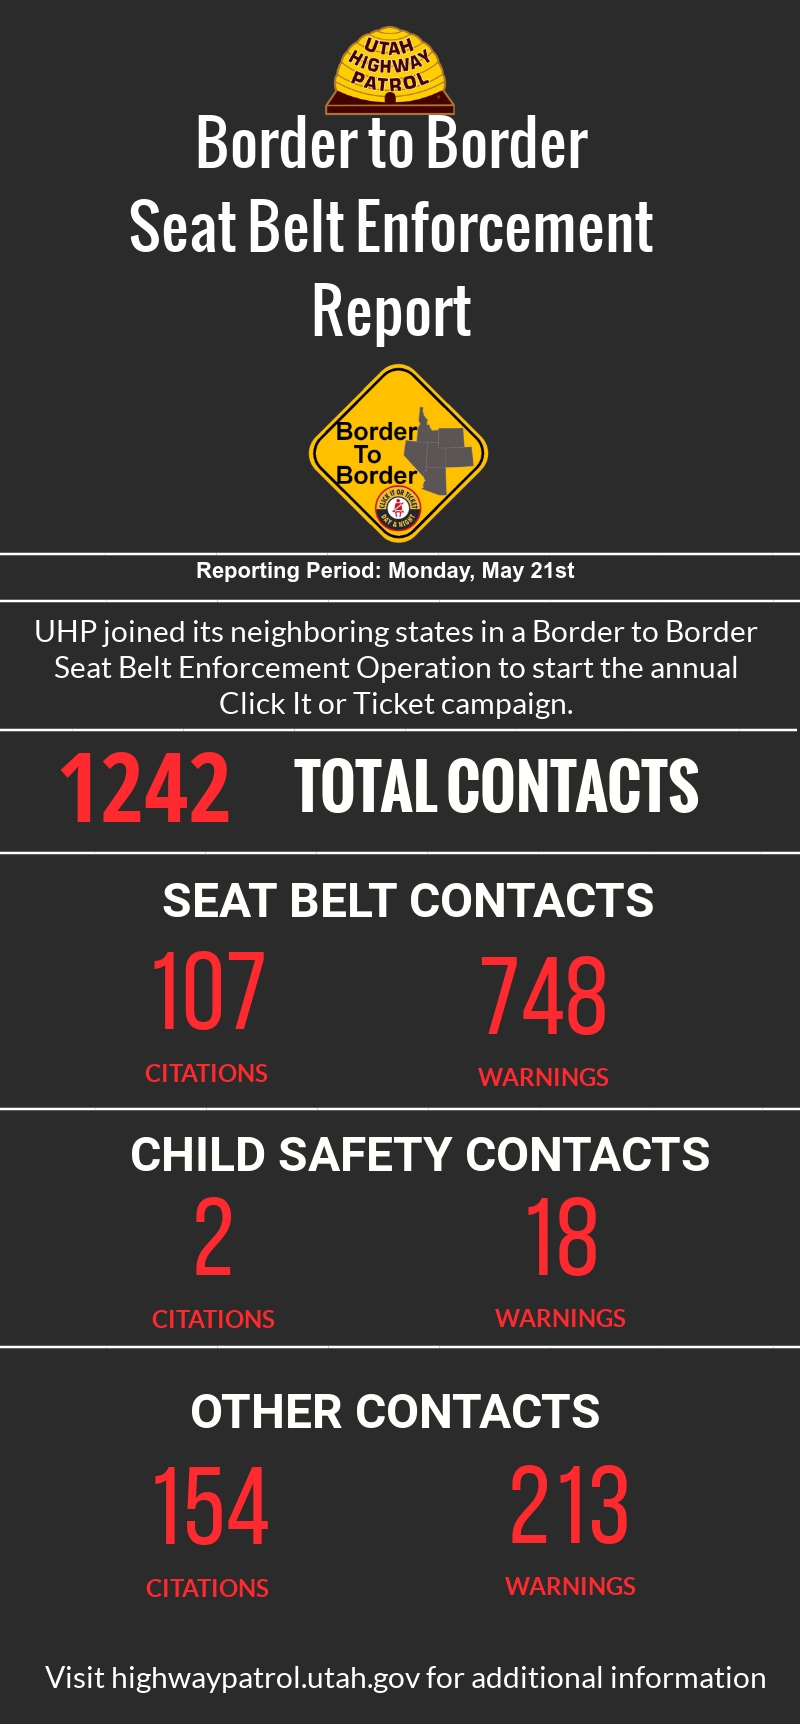 Infographic with results from UHP's border to border seat belt operation: 1242 total contacts, 107 seat belt citations, 748 seat belt warnings, 2 child seat cites, 18 warnings, other contacts - 154 citations, 213 warnings